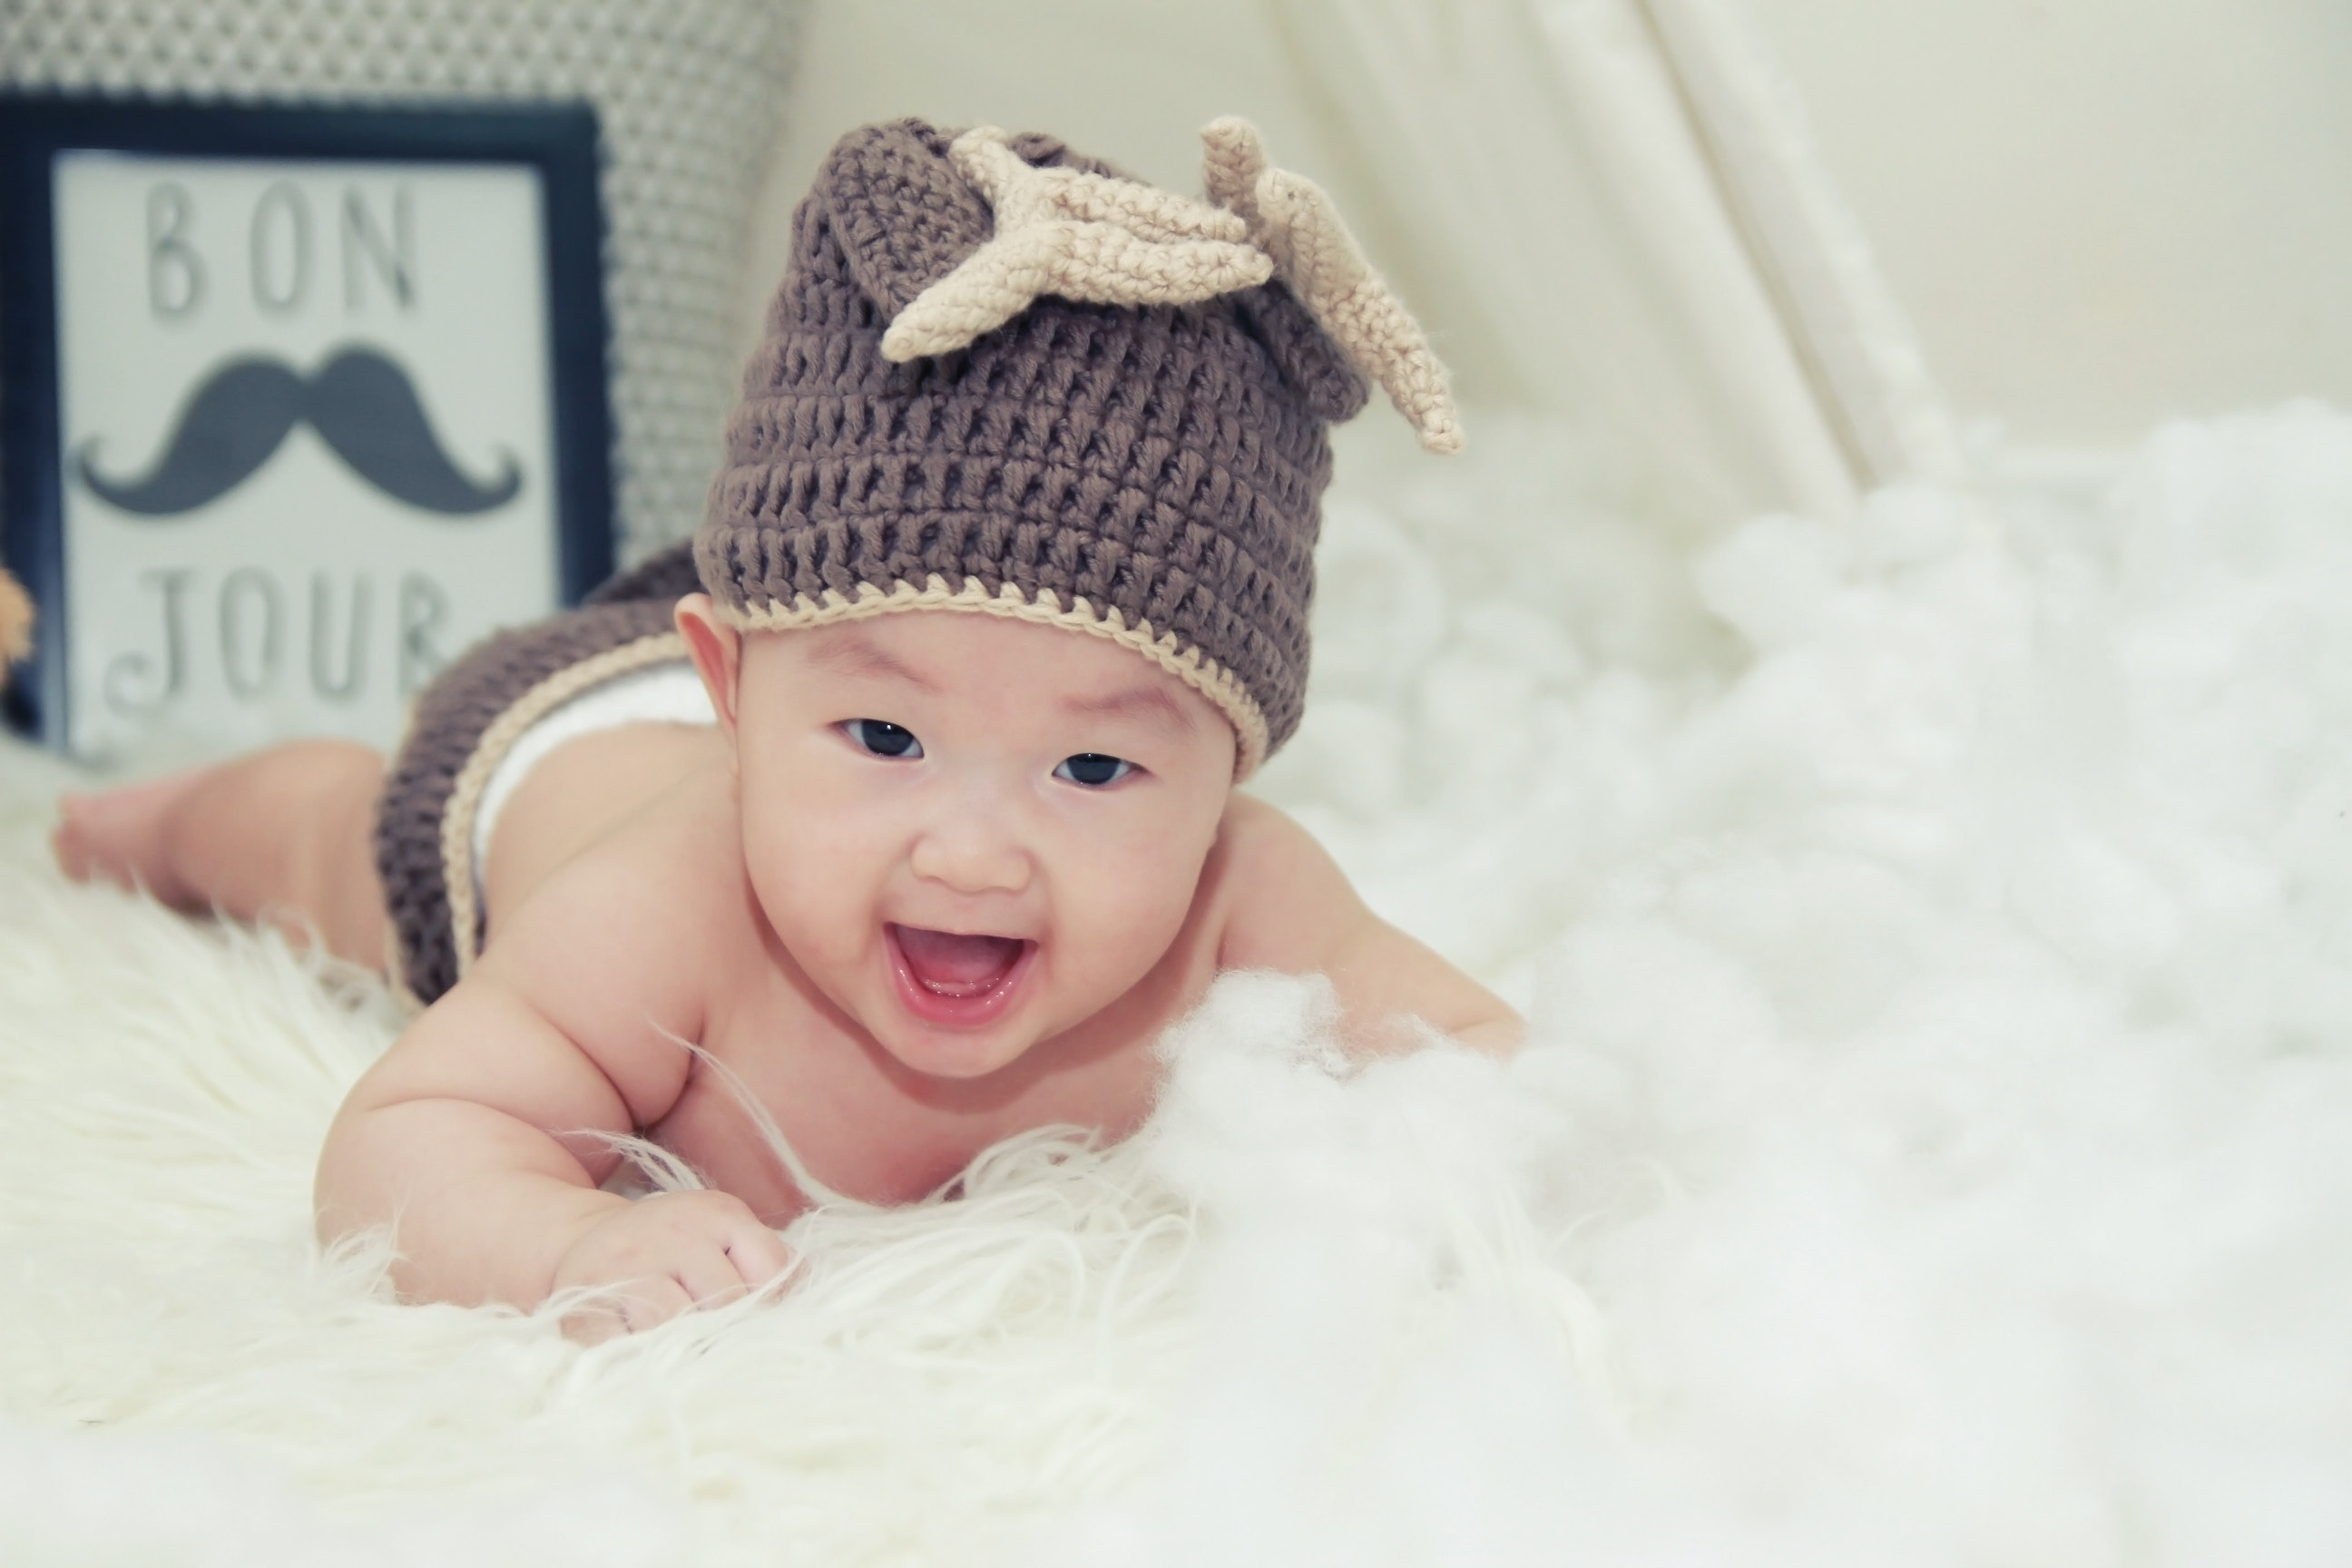 adorable-baby-boy-421884